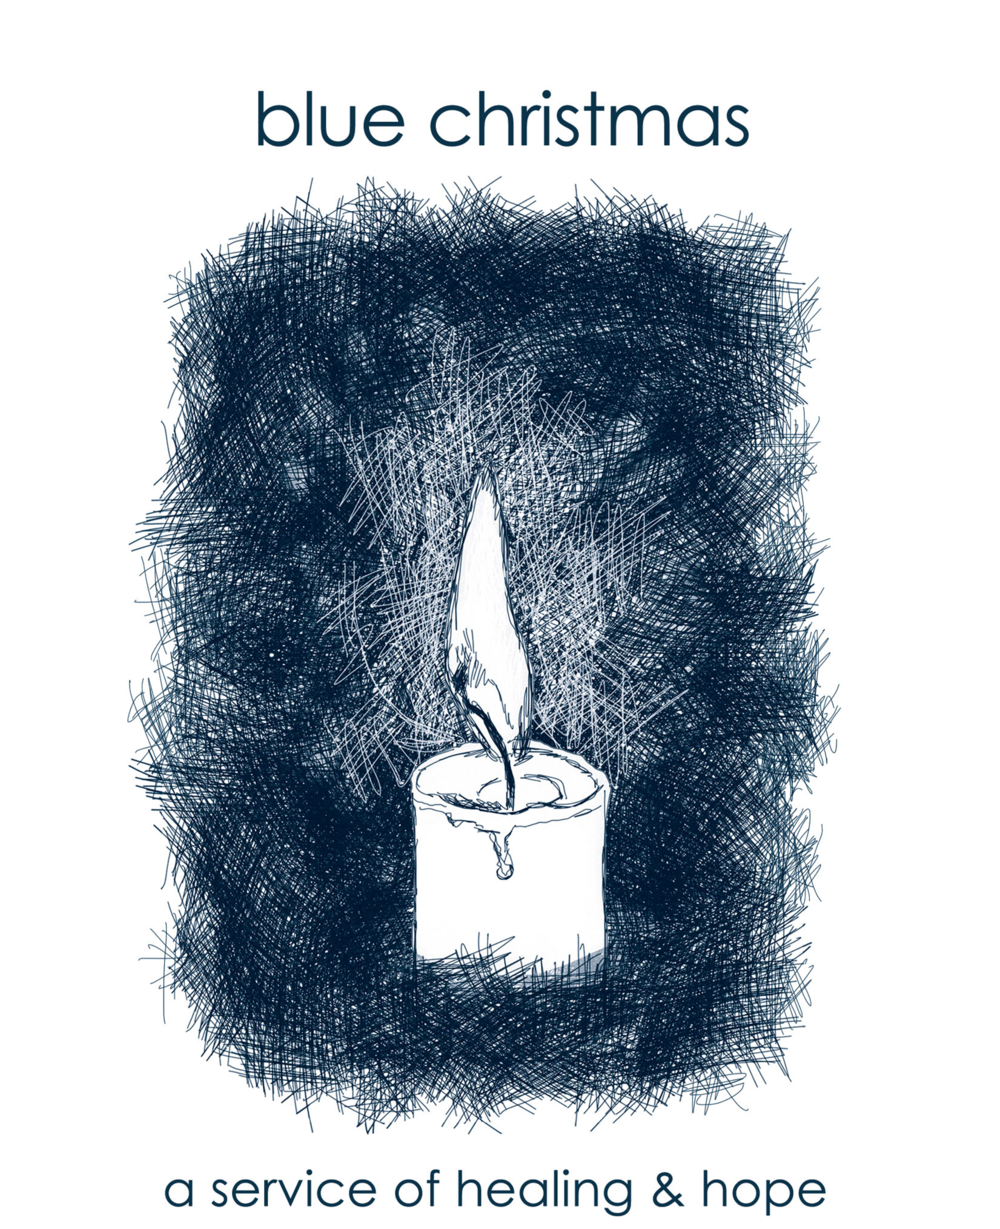 blue christmas service on december 21 - Blue Christmas Service